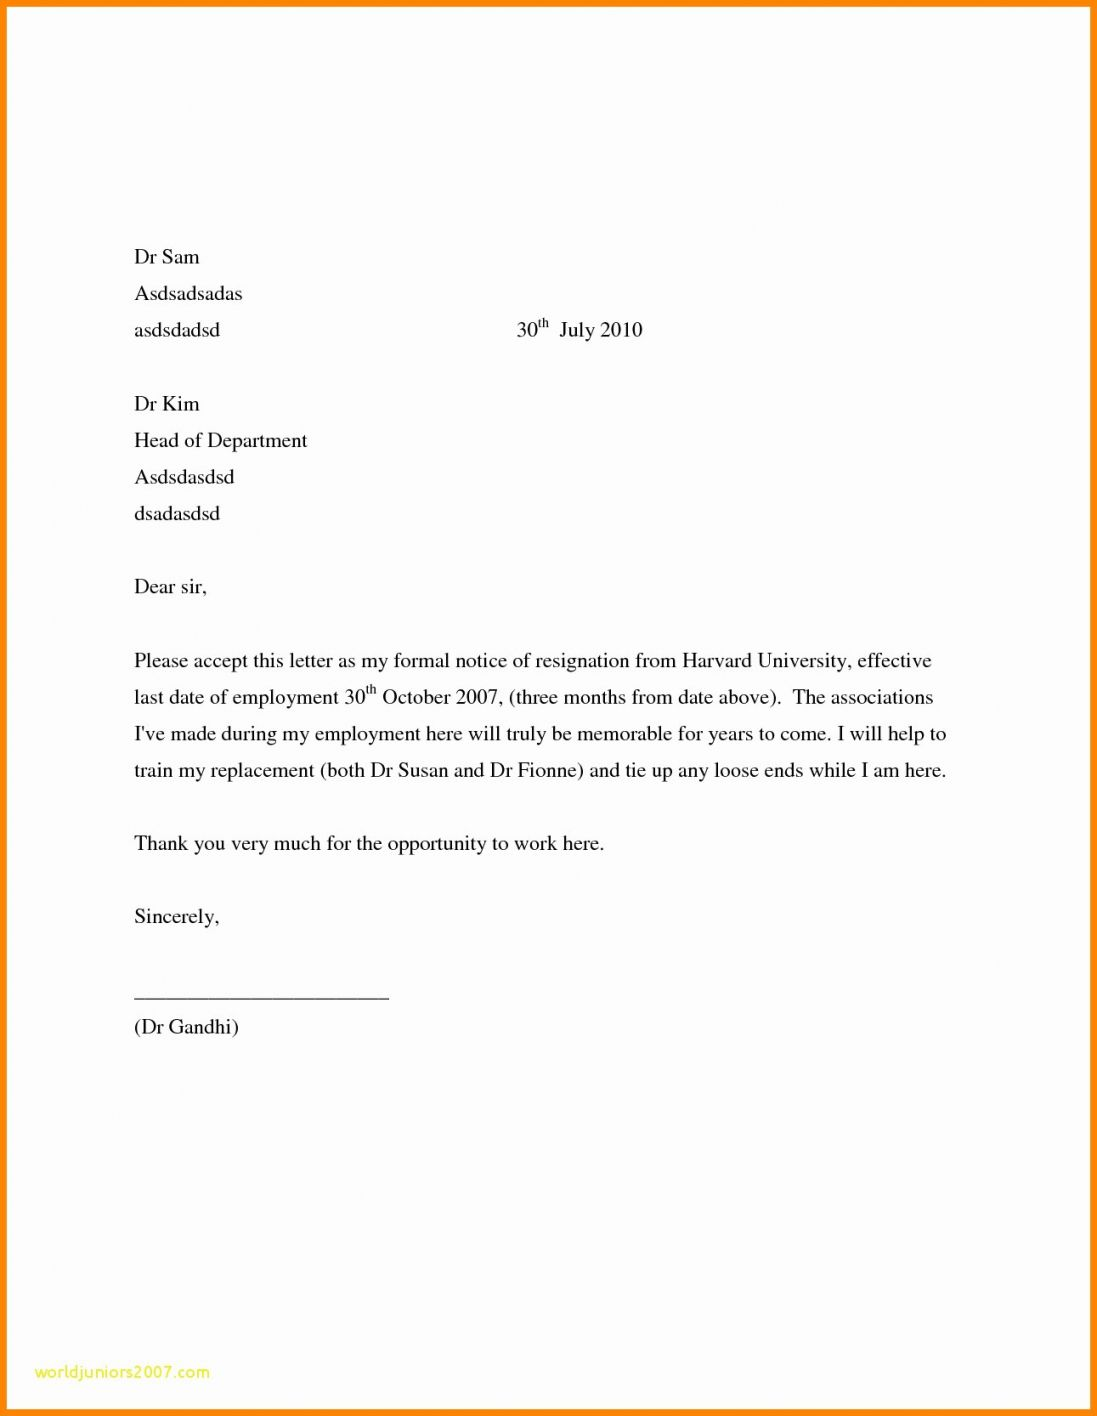 Get Our Sample Of Bank Account Cancellation Letter Template For Free In 2020 Resignation Letter Resignation Letter Format Resignation Template